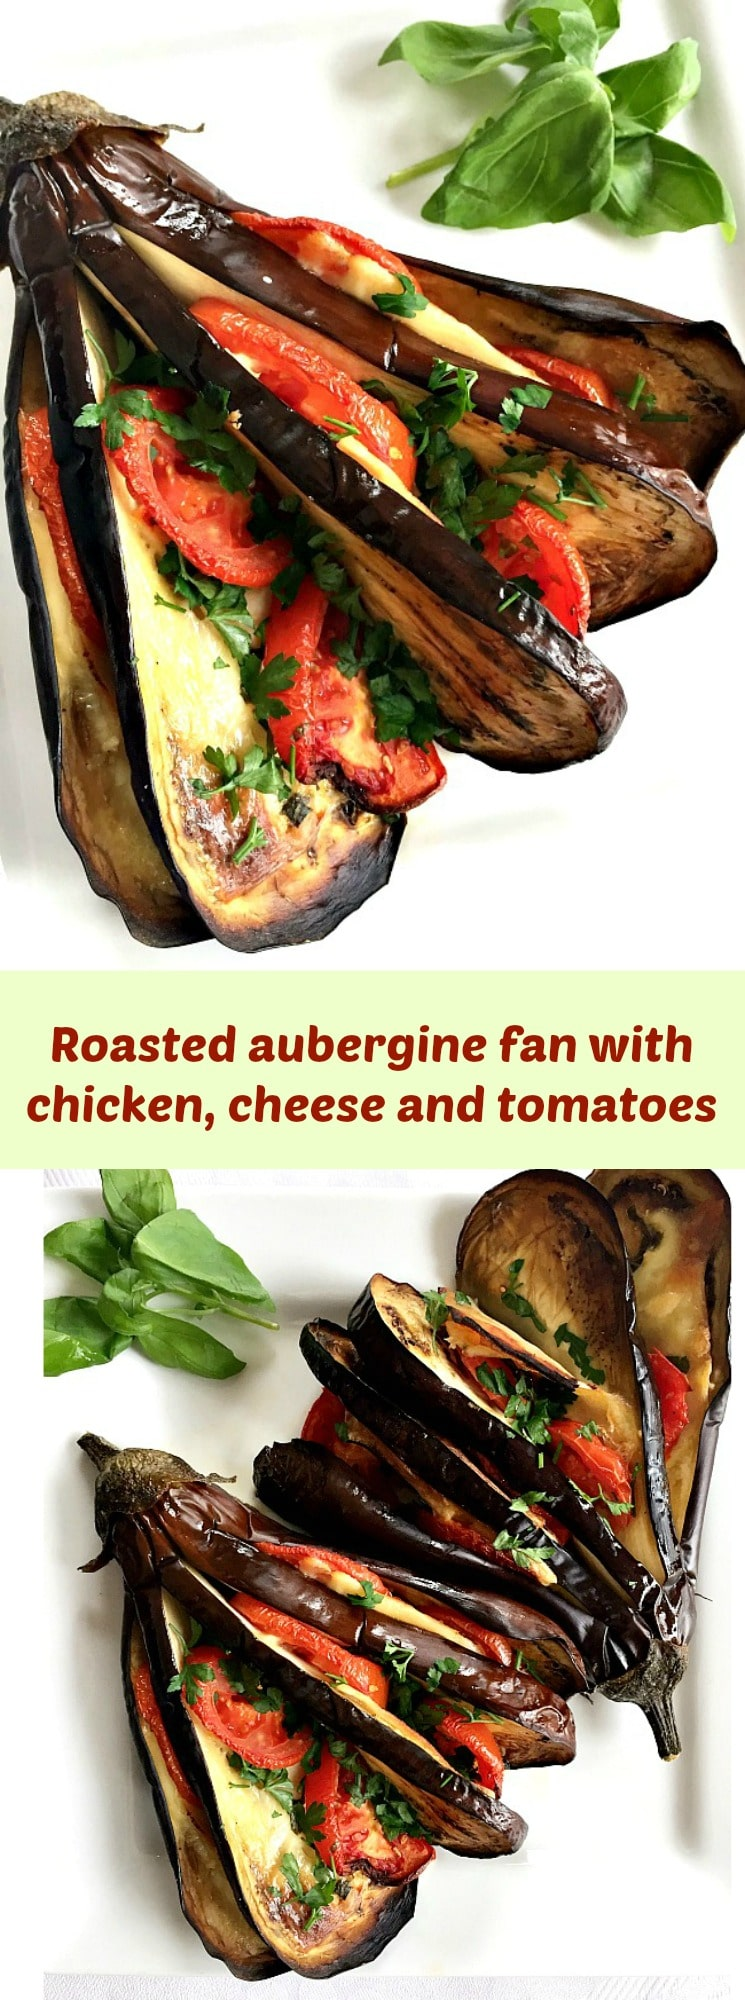 Roasted aubergine fan with chicken, cheese and tomatoes